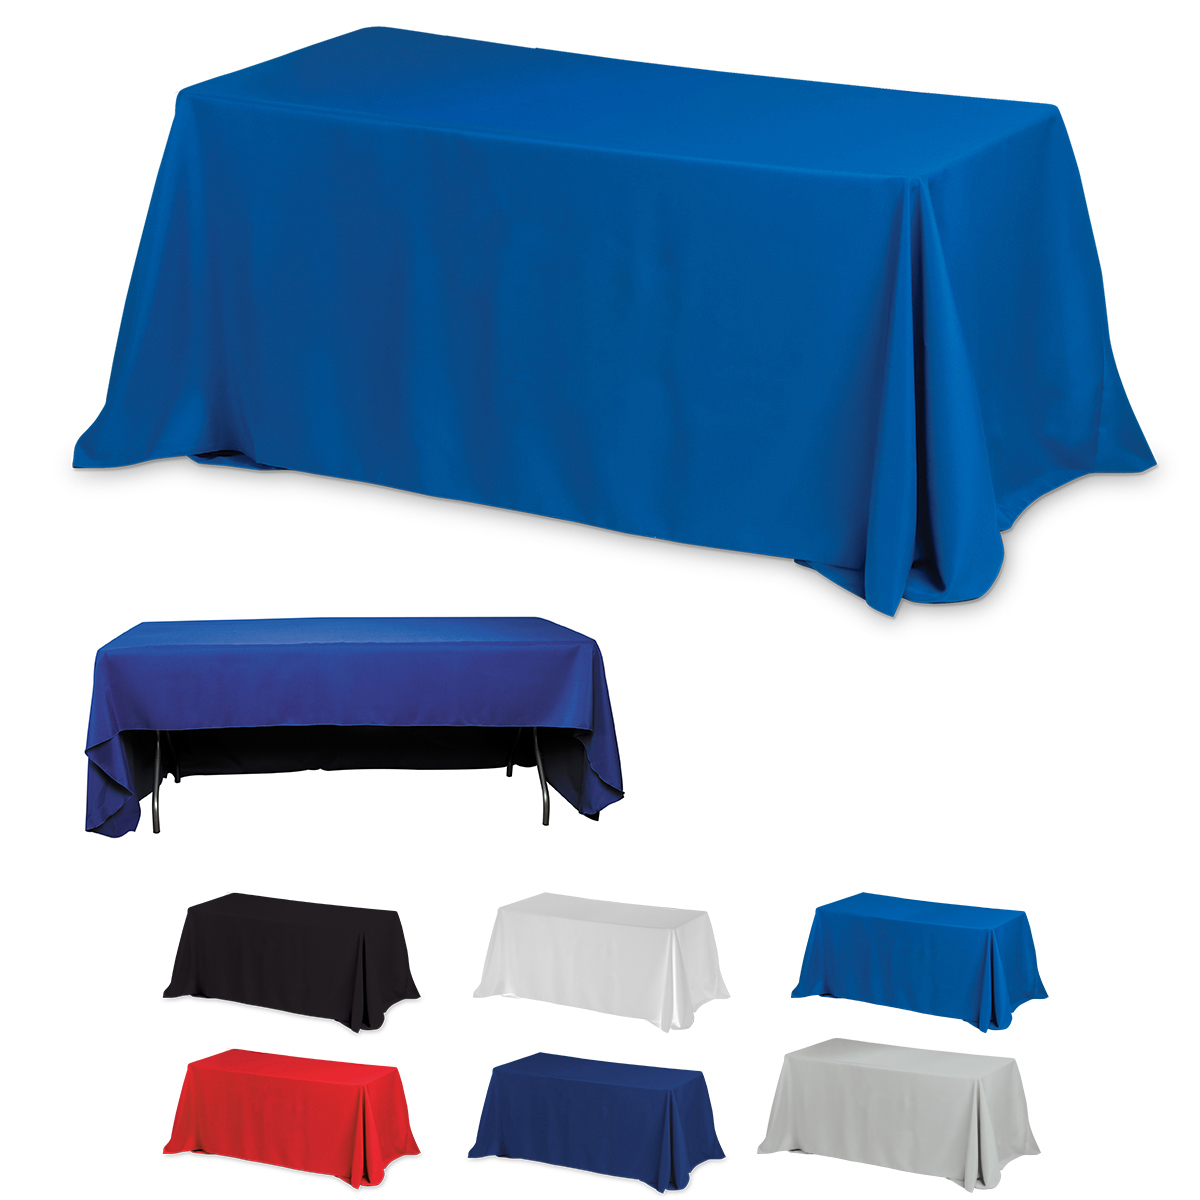 6 3 Sided Economy Table Covers Amp Table Throws Blanks